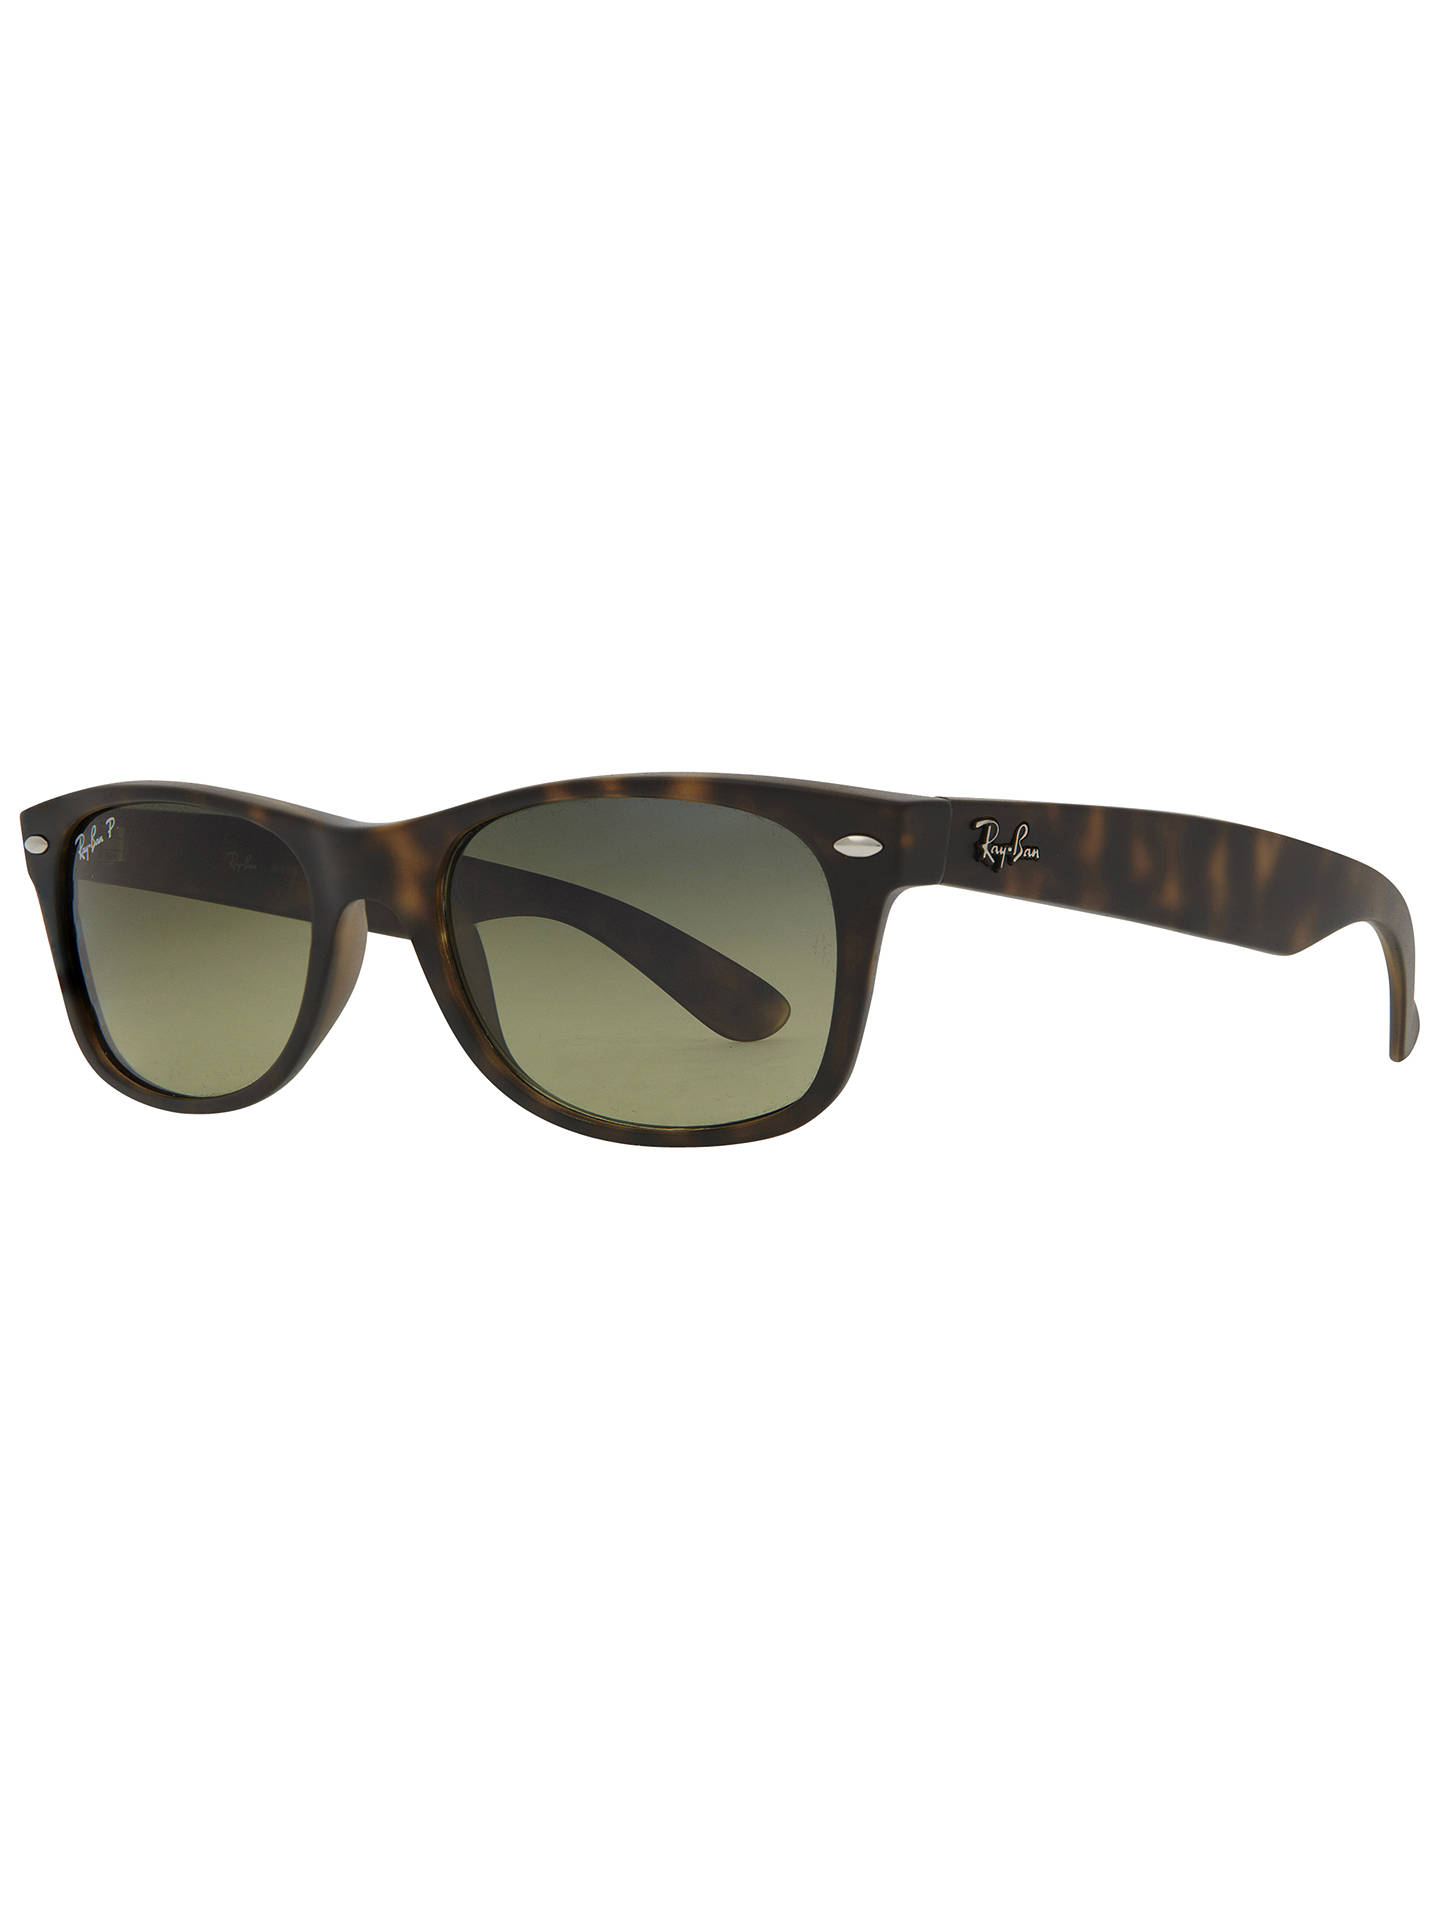 8a2be8f09a Ray-Ban RB2132 Men s New Wayfarer Polarised Sunglasses at John Lewis ...